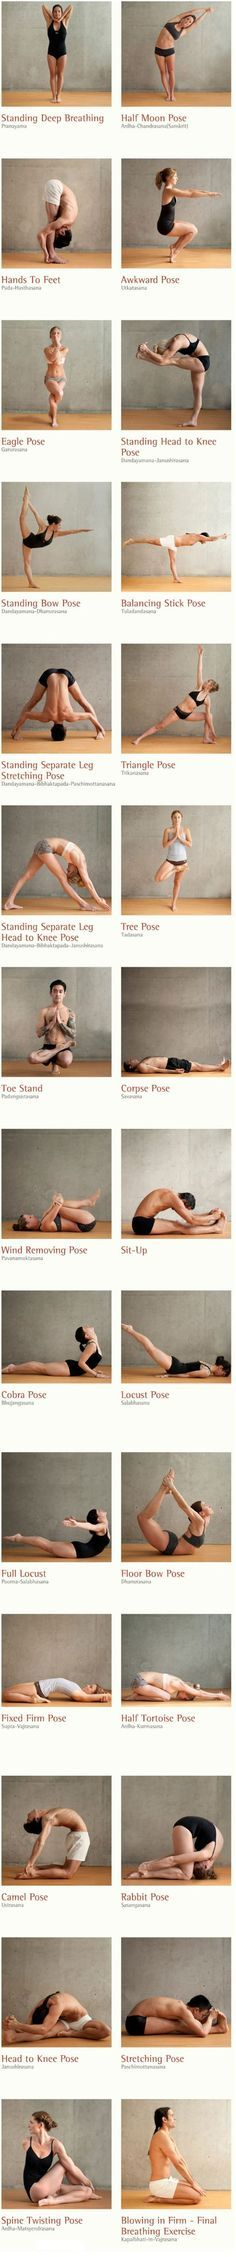 Yoga Proven To Be Helpful For Improving Arthritis Pain